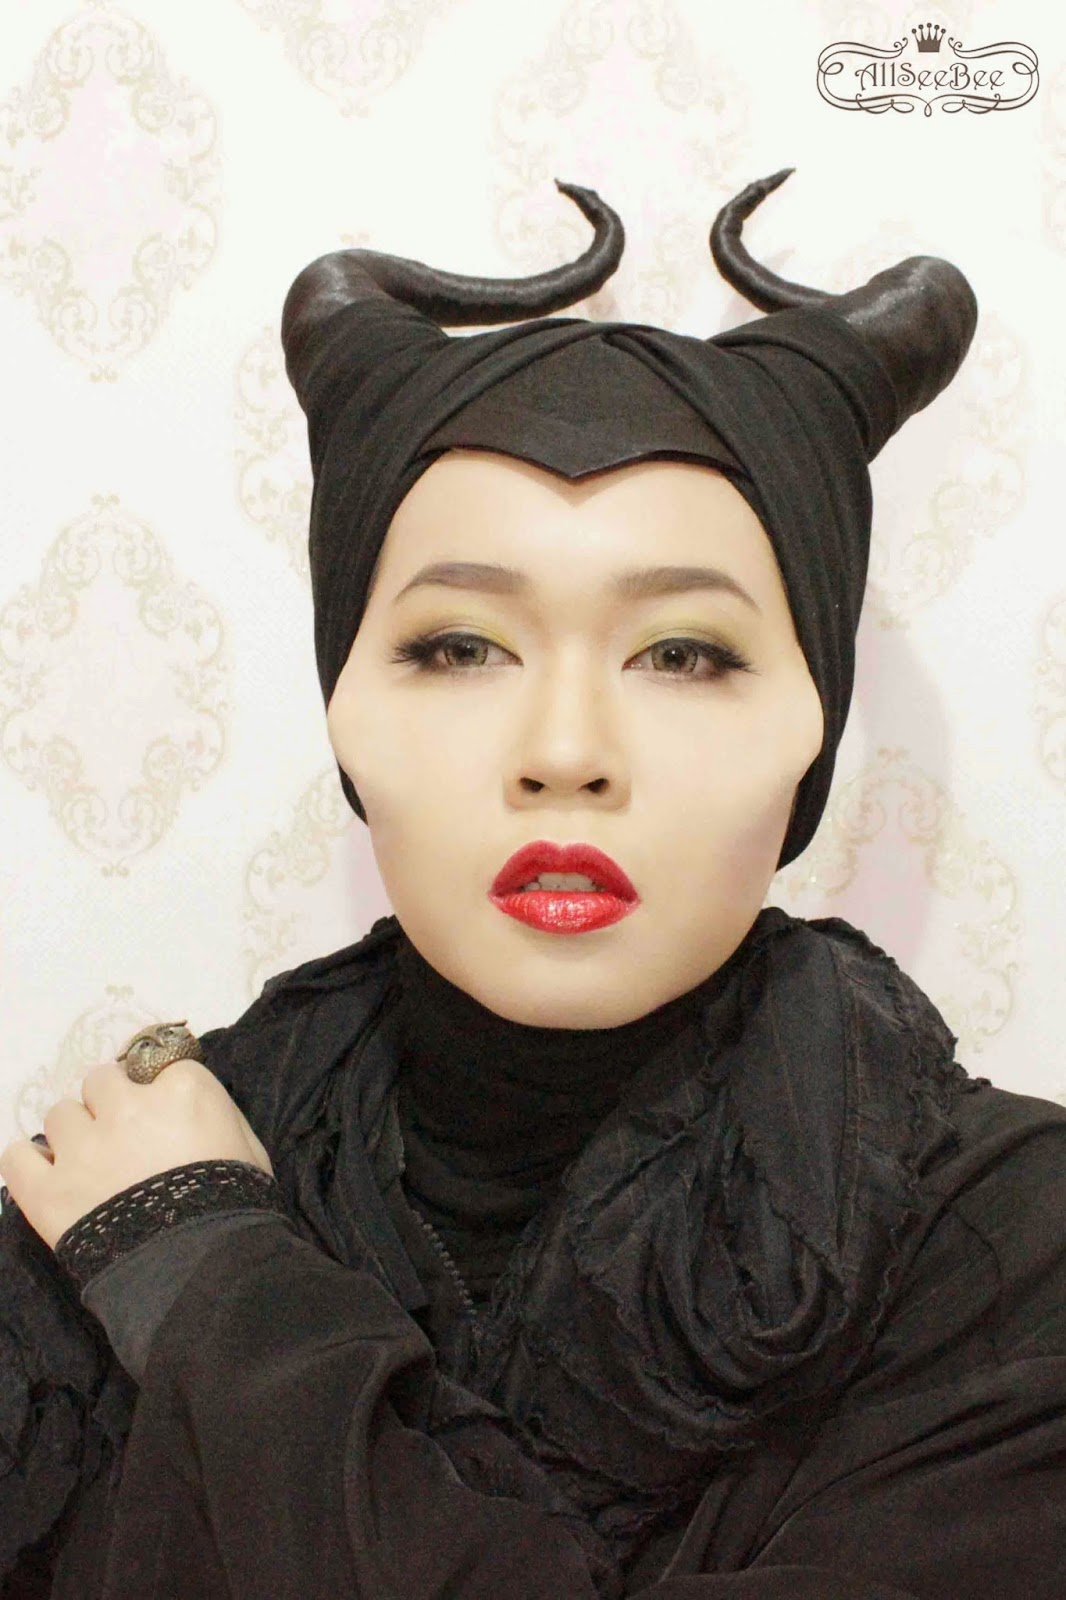 Angelina Jolie's Disney Maleficent Makeup + Maleficent's Horns